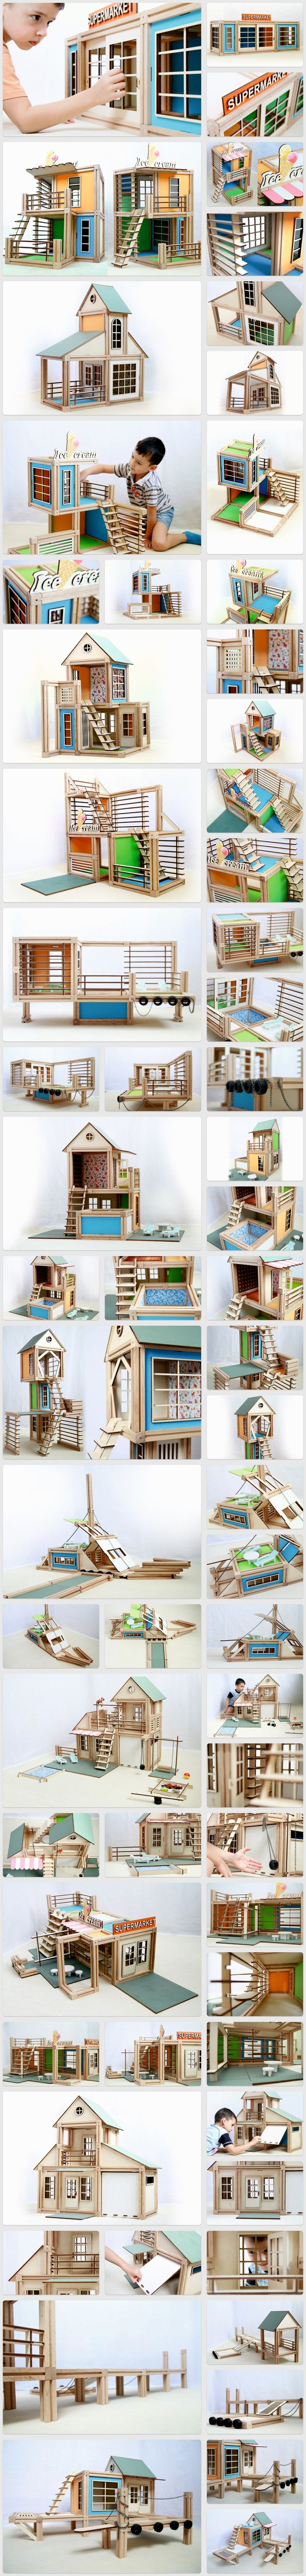 WoodyMac - a wooden, magnetic, architectural toy > woodymac.com